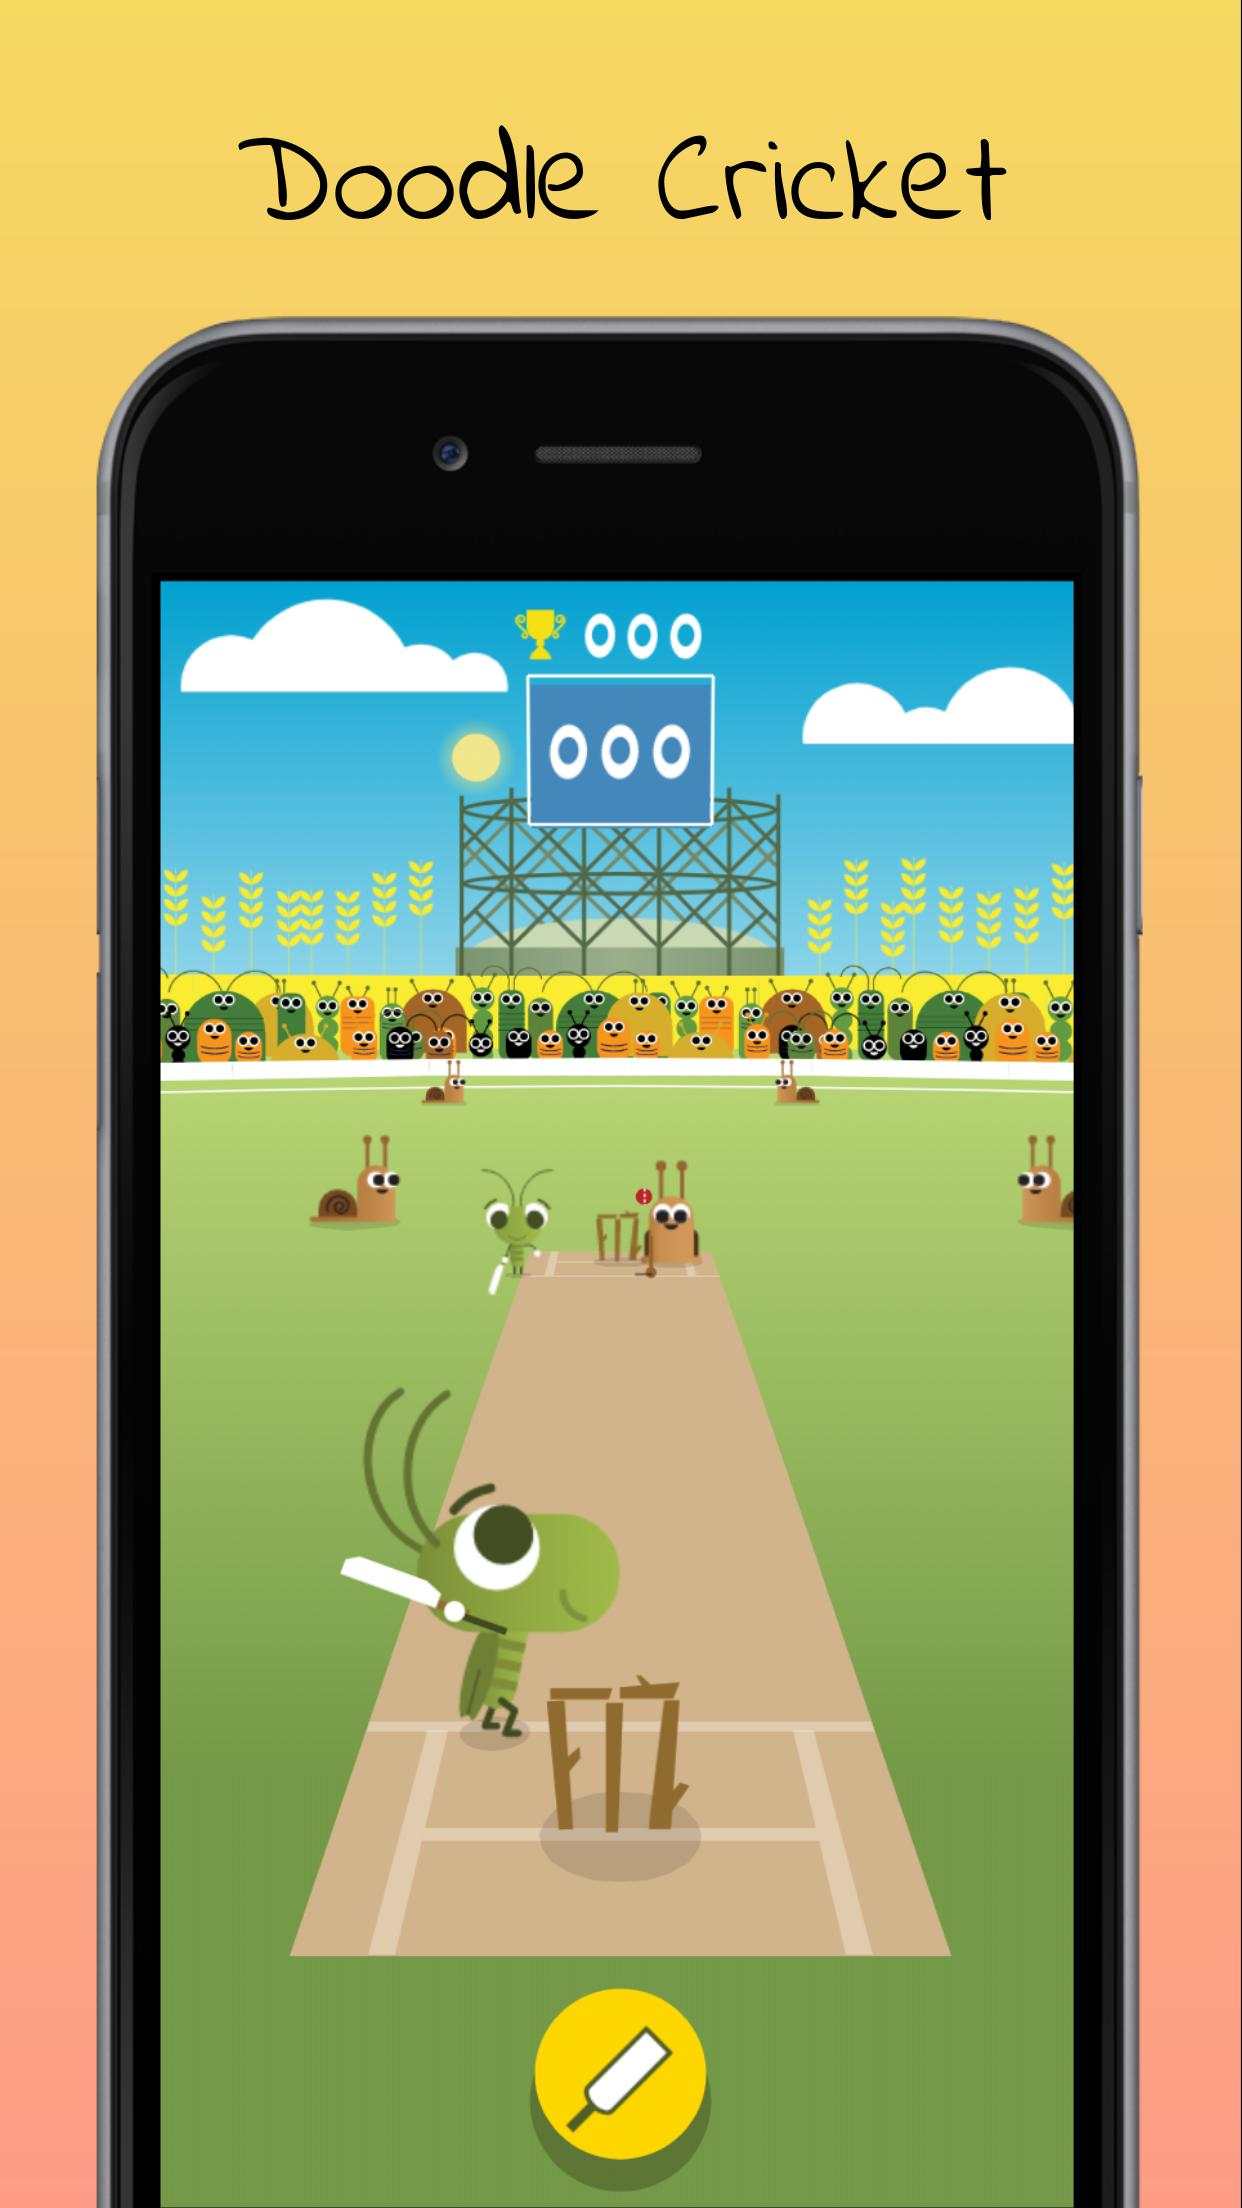 google doodles game collection for android apk download google doodles game collection for